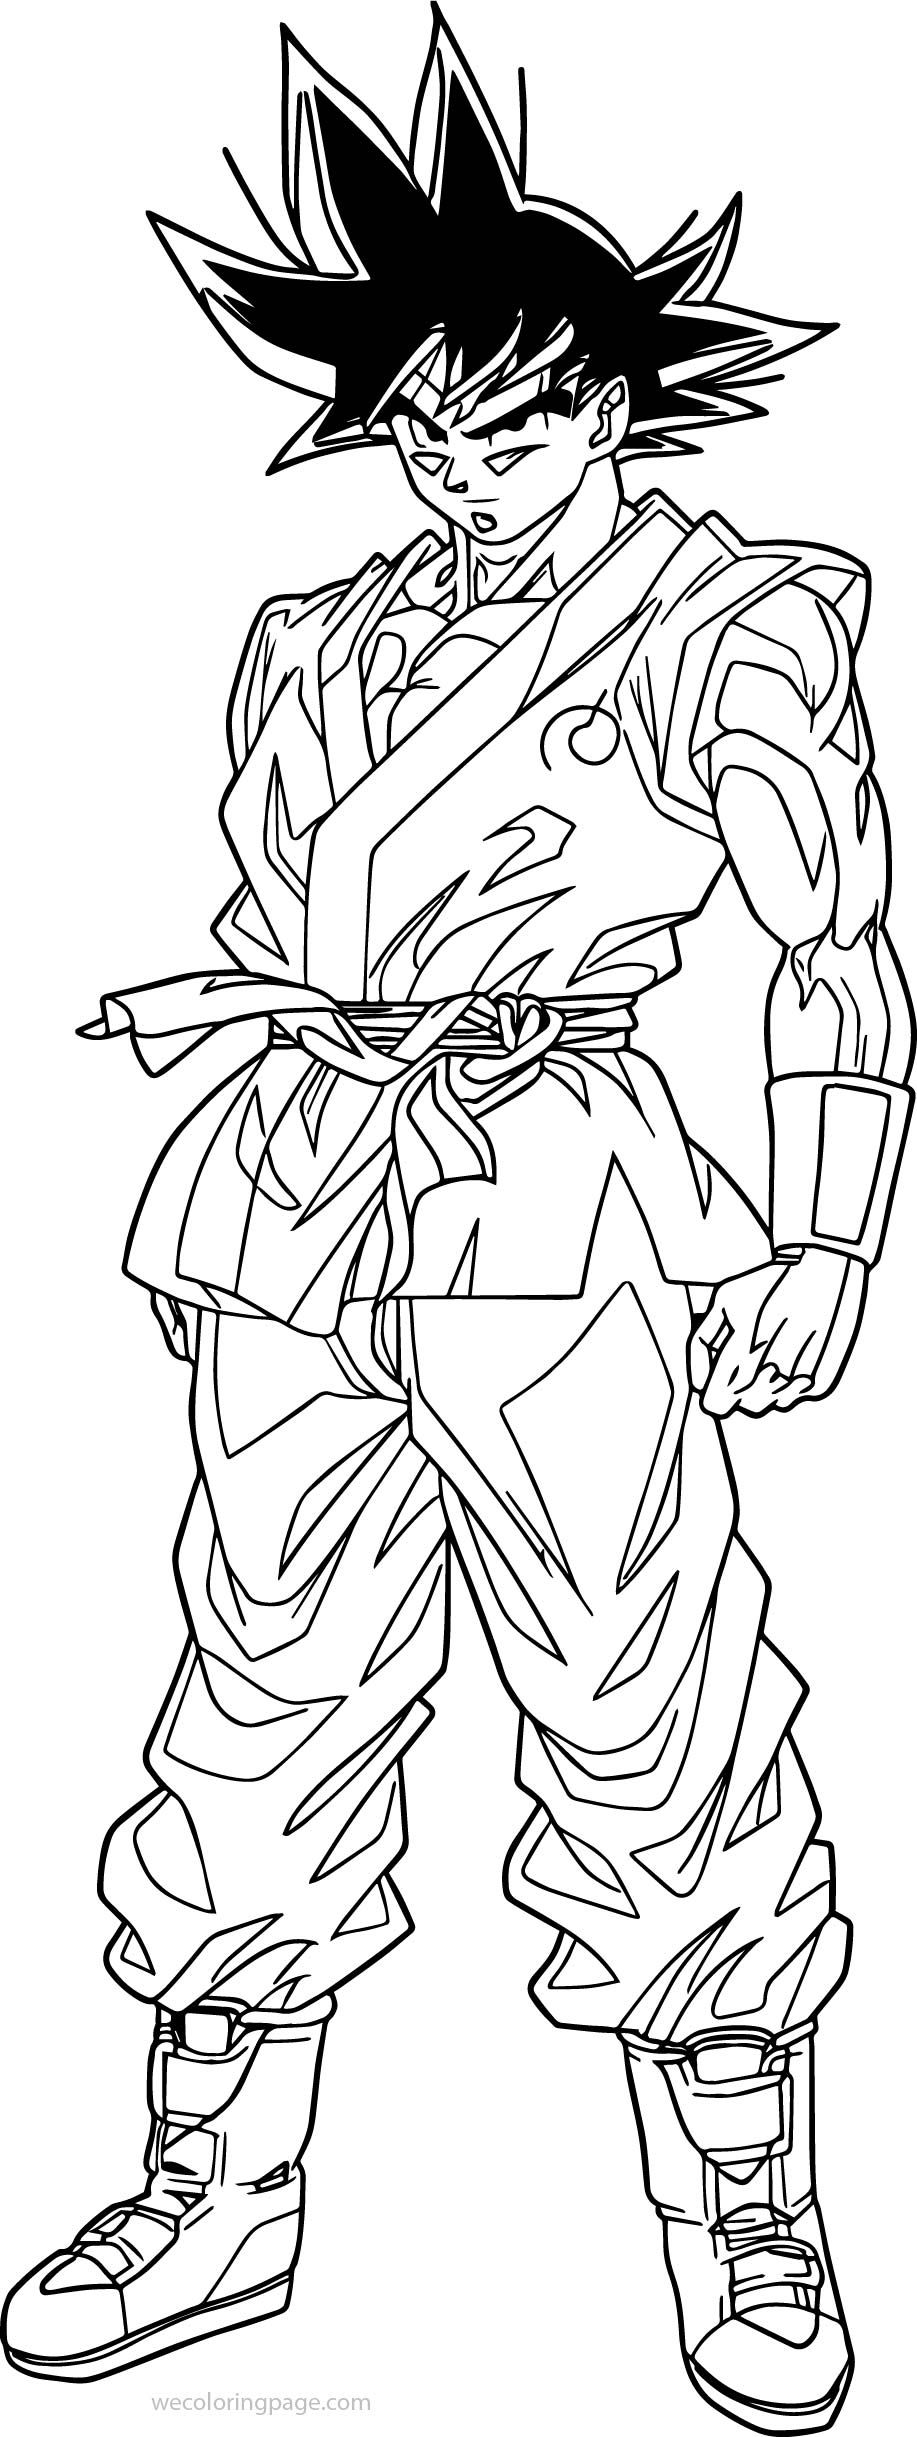 Awesome Goku Waiting Coloring Page Coloring Pages Coloring Pages For Boys Color